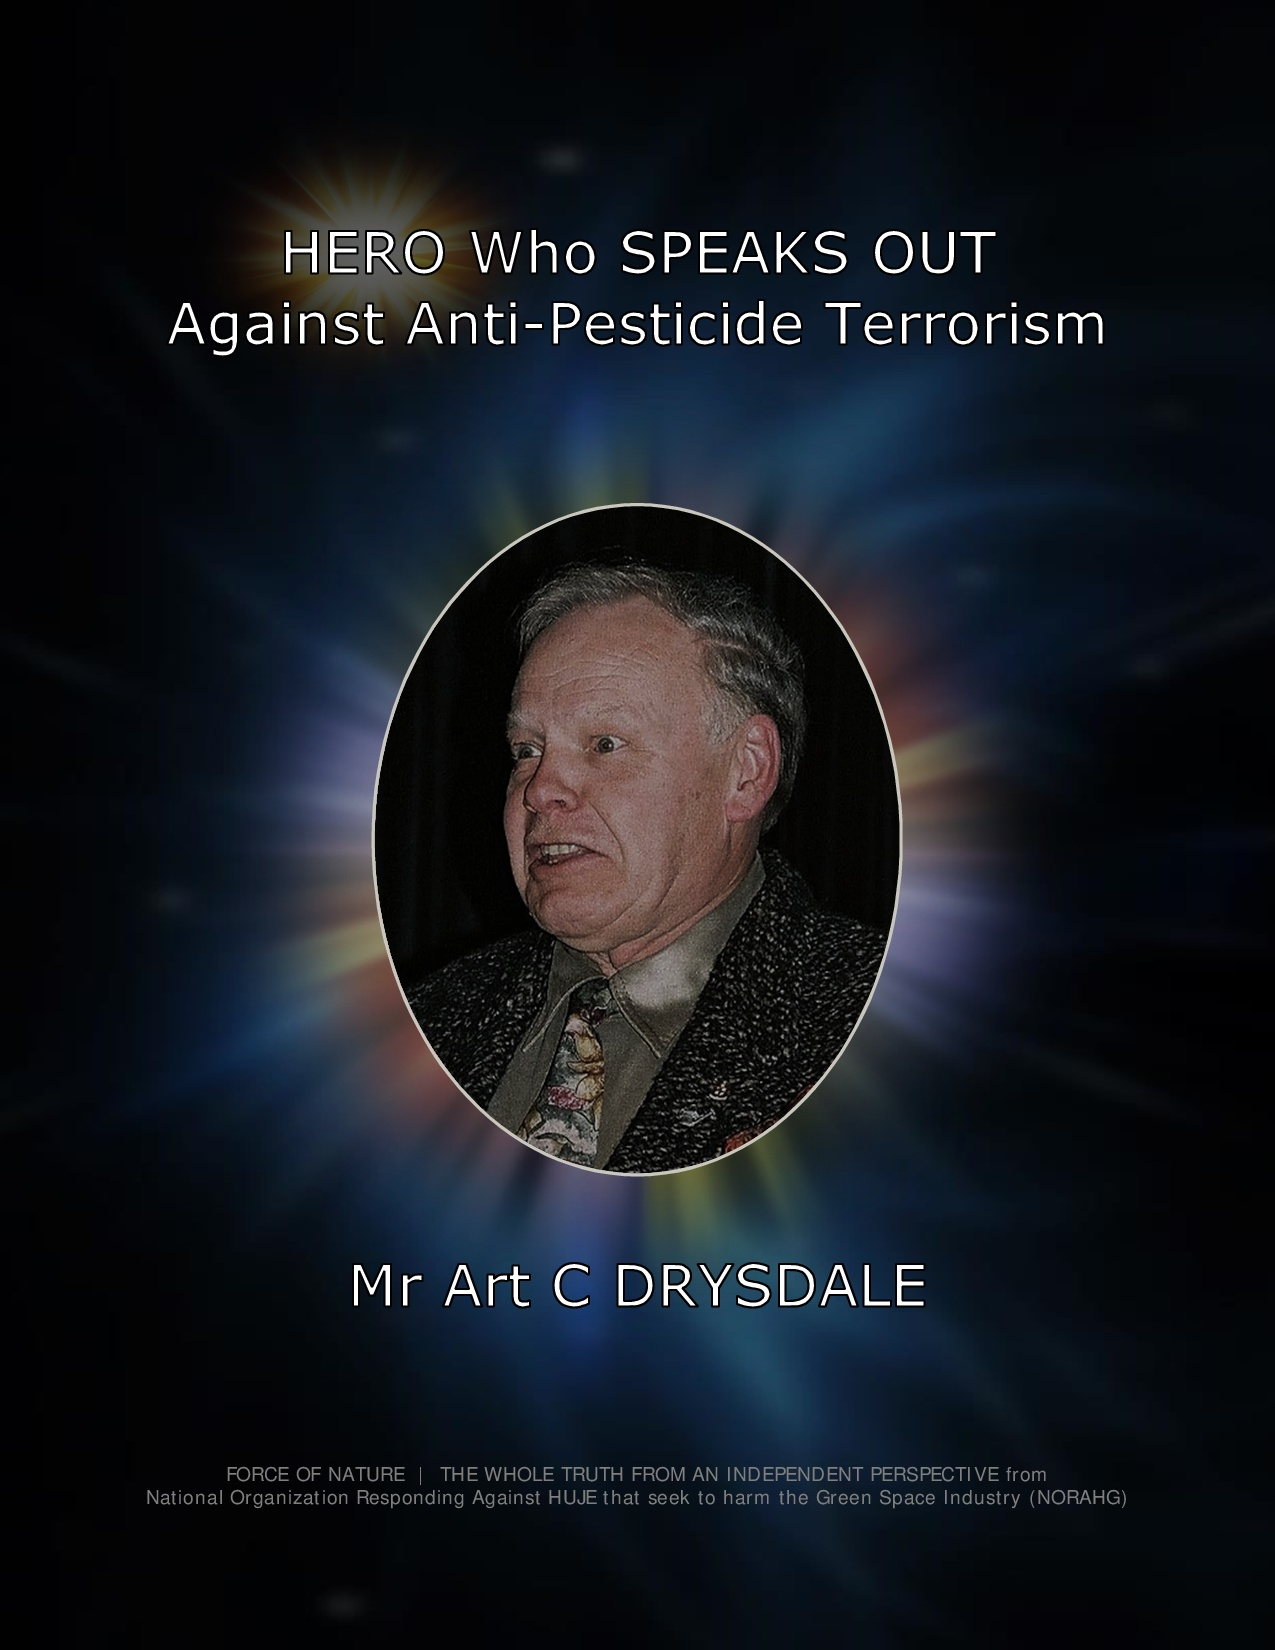 DRYSDALE, Mr Art C